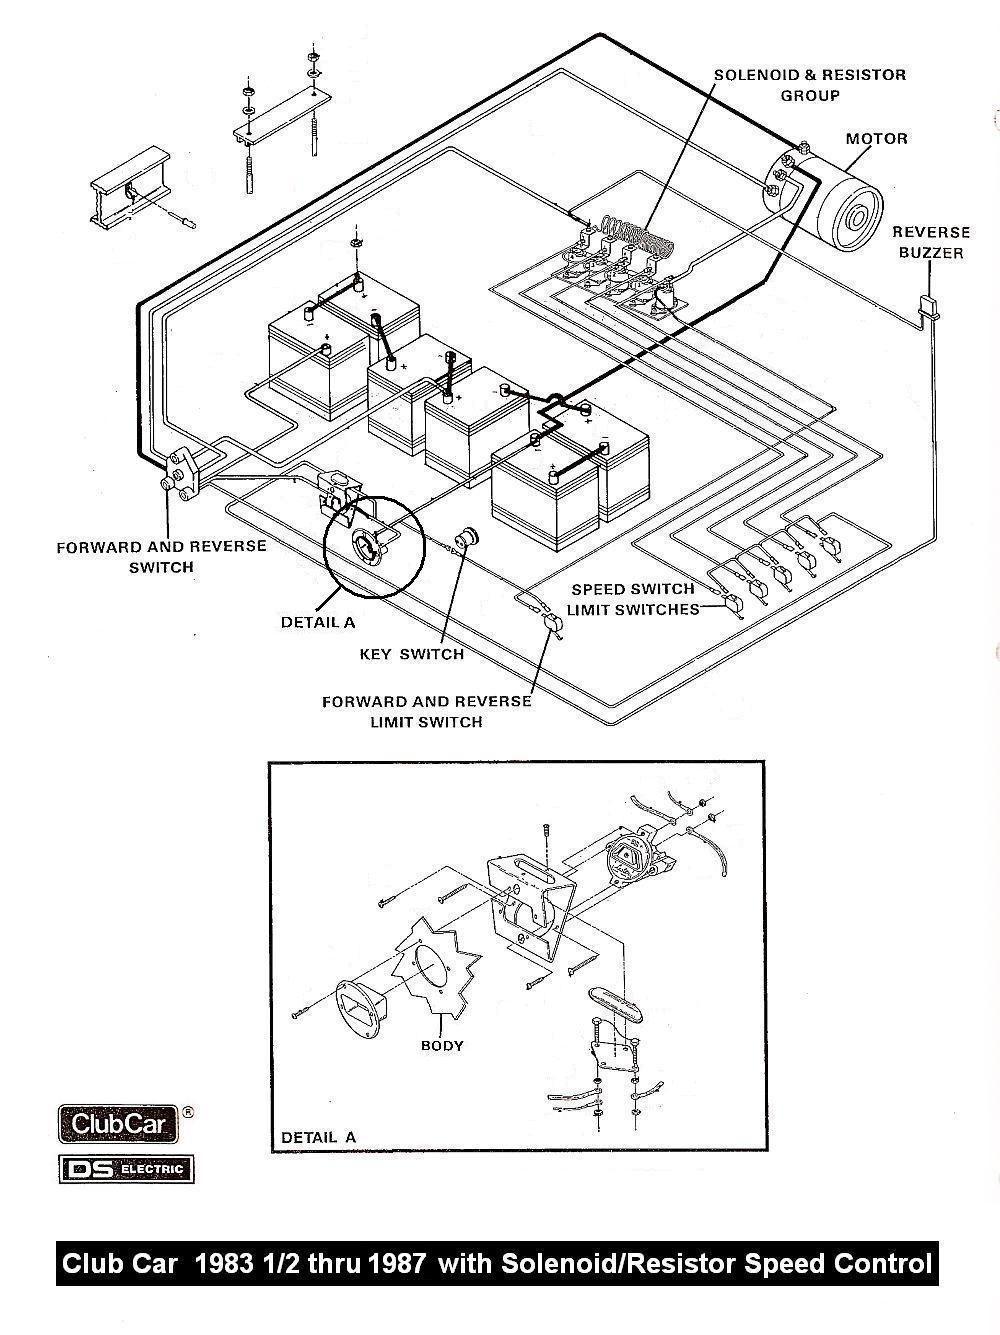 0e8d045370be7682b159825224221faa vintagegolfcartparts com *freezer & crock pot* pinterest 1992 club car wiring diagram at gsmportal.co